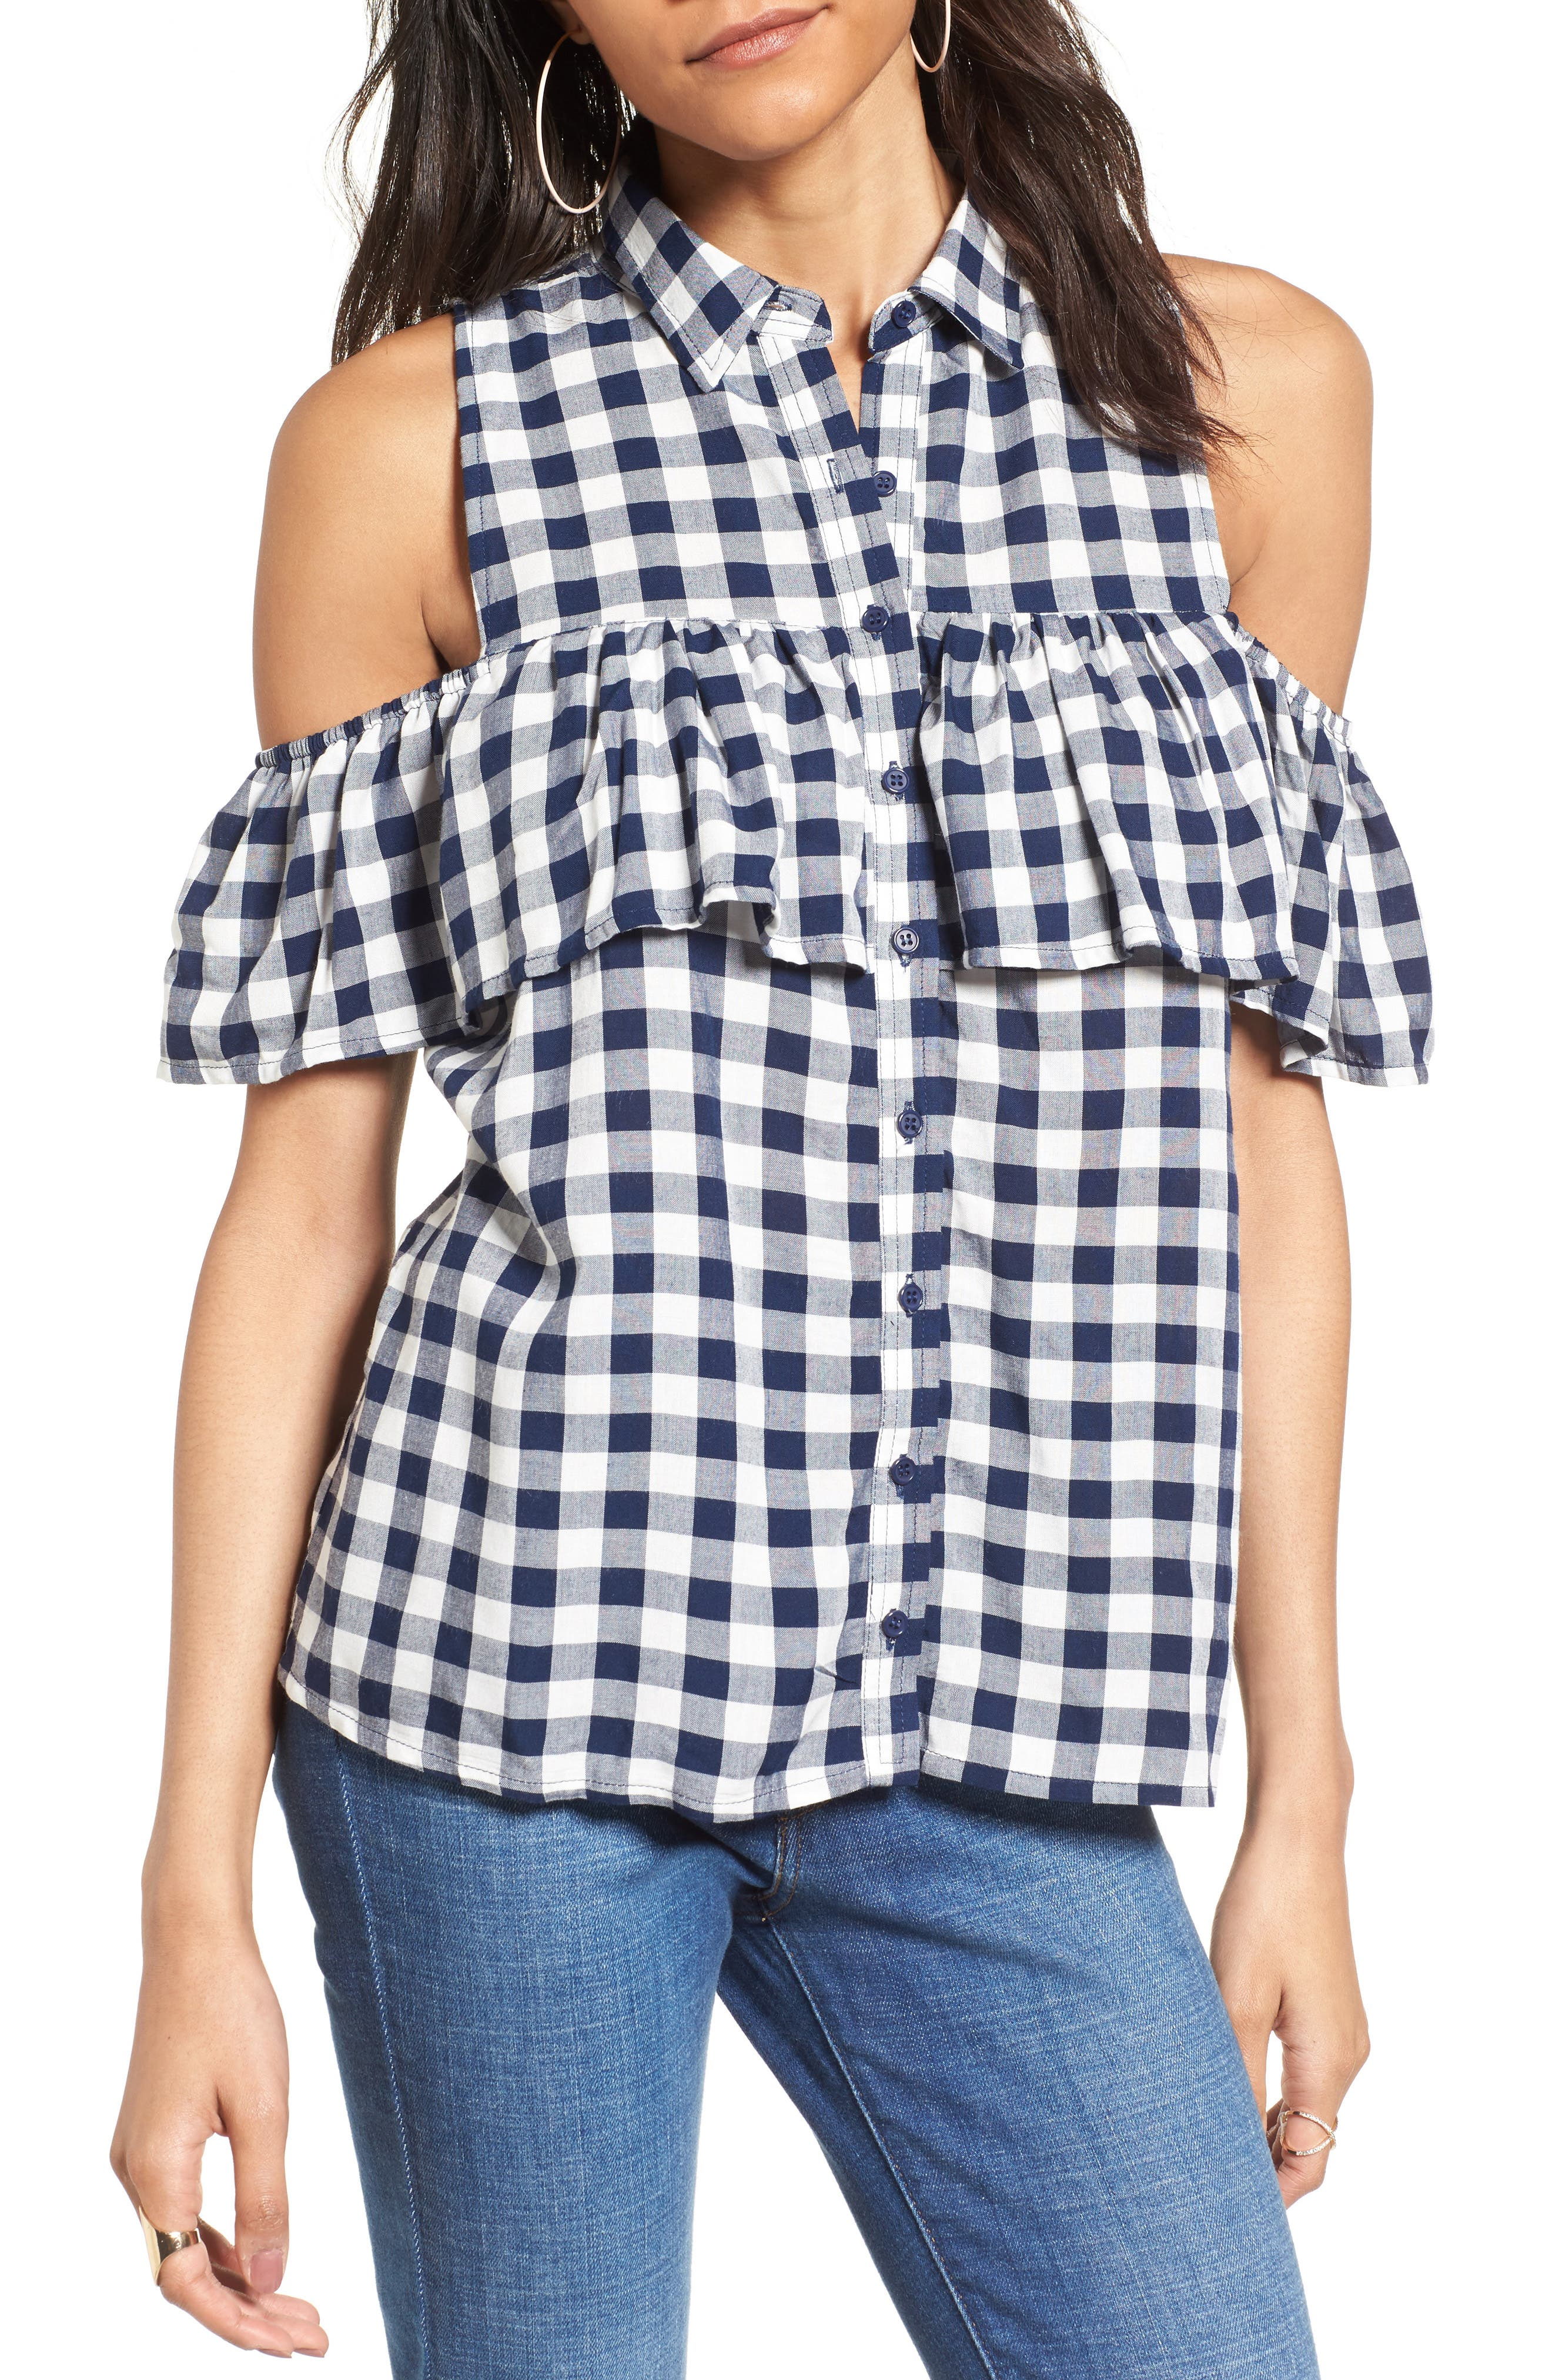 Alternate Image 1 Selected - Love, Fire Gingham Cold Shoulder Top